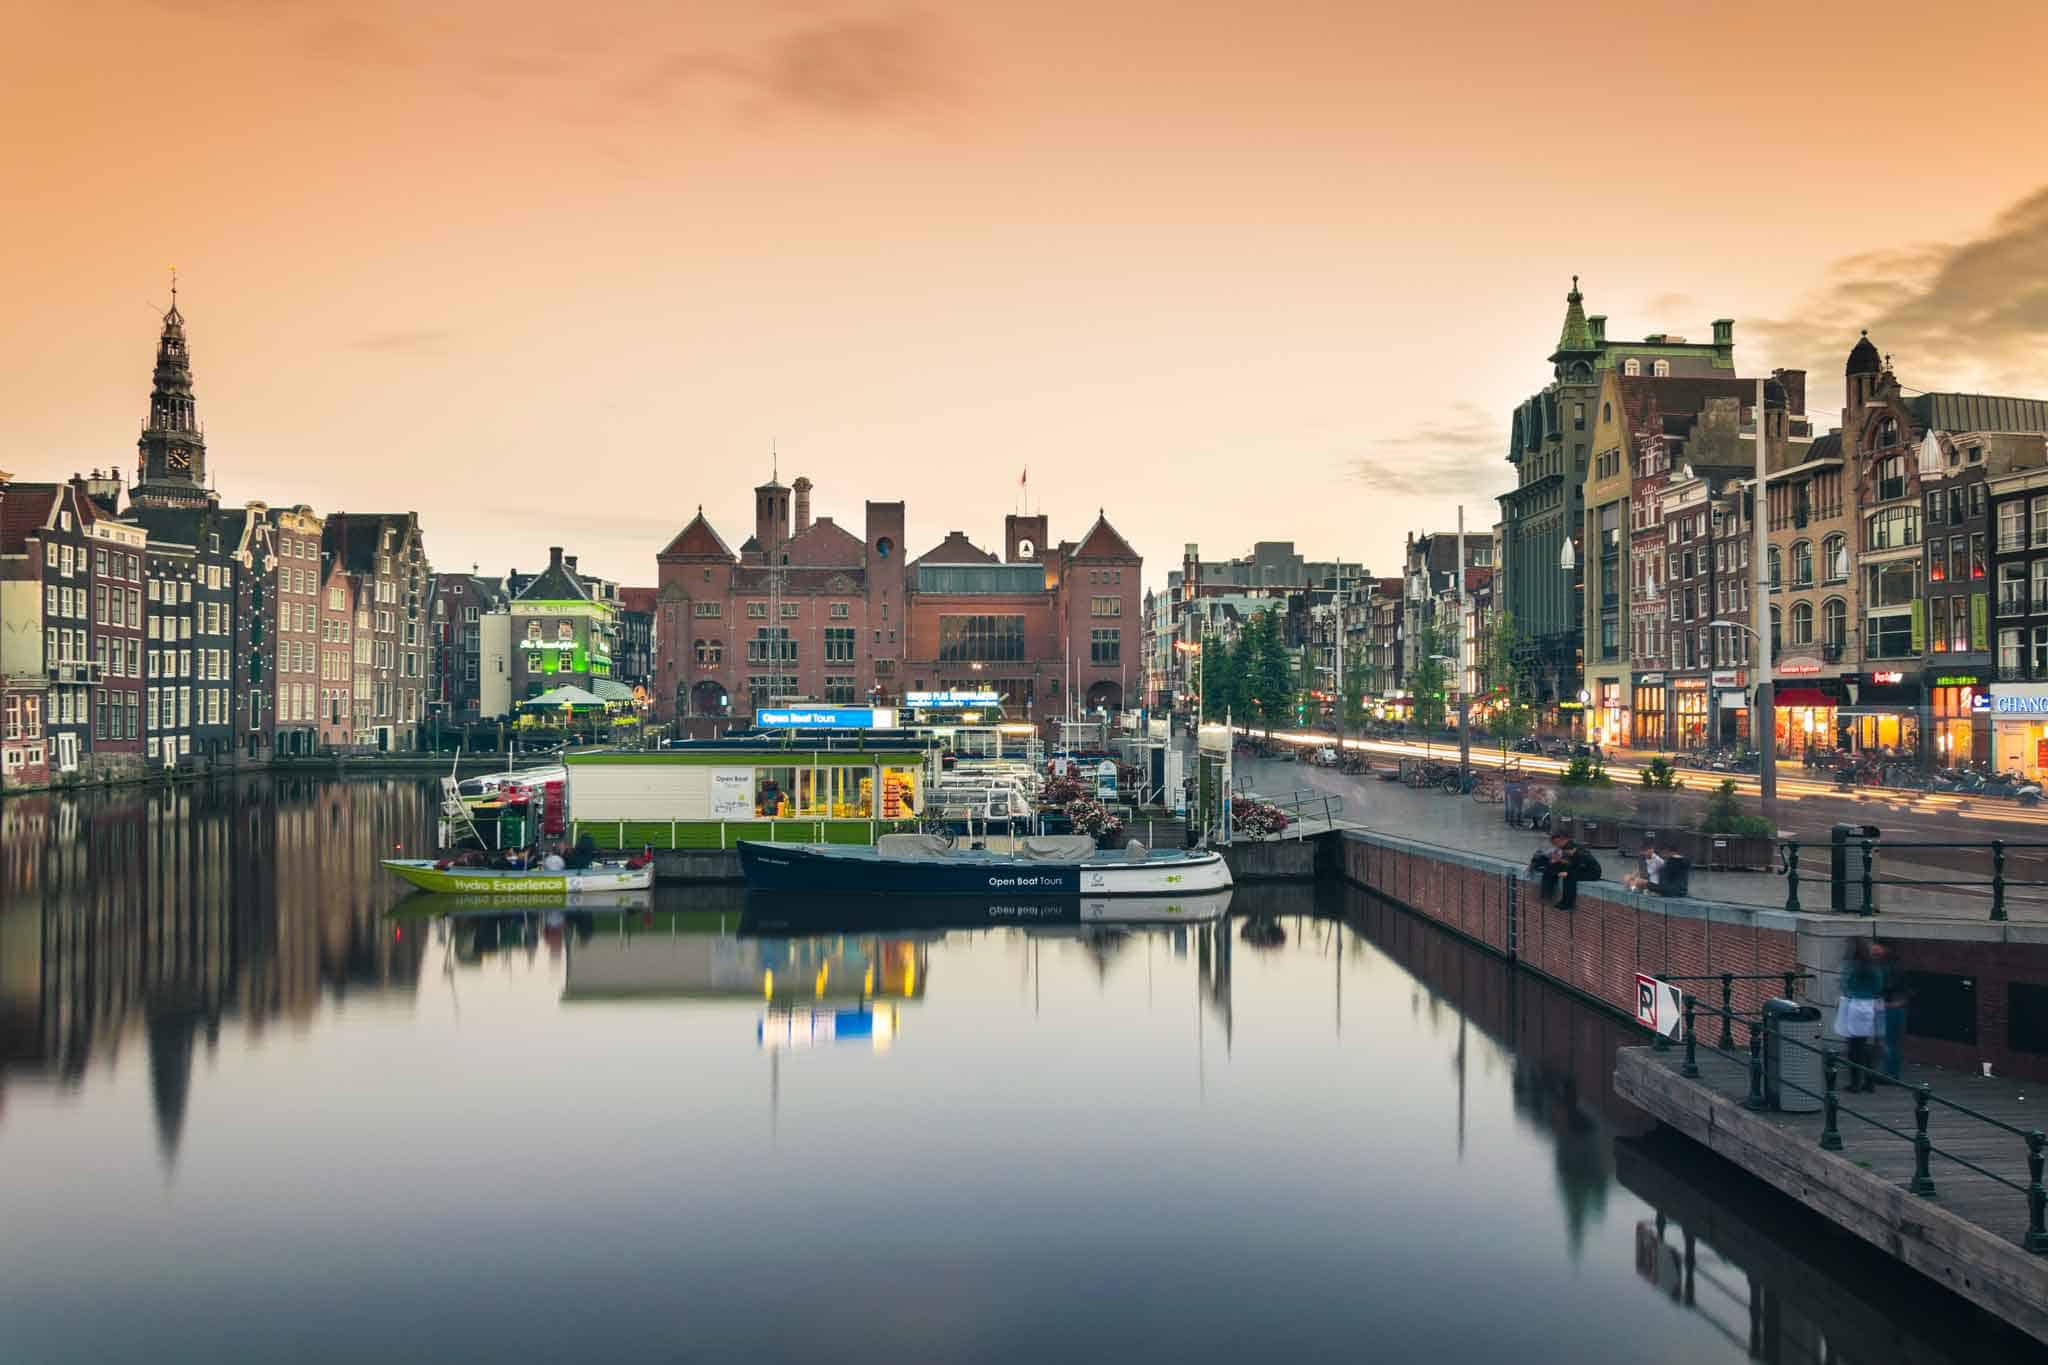 Amsterdam at night, one of the most beautiful times to stroll the streets that run alongside the canals